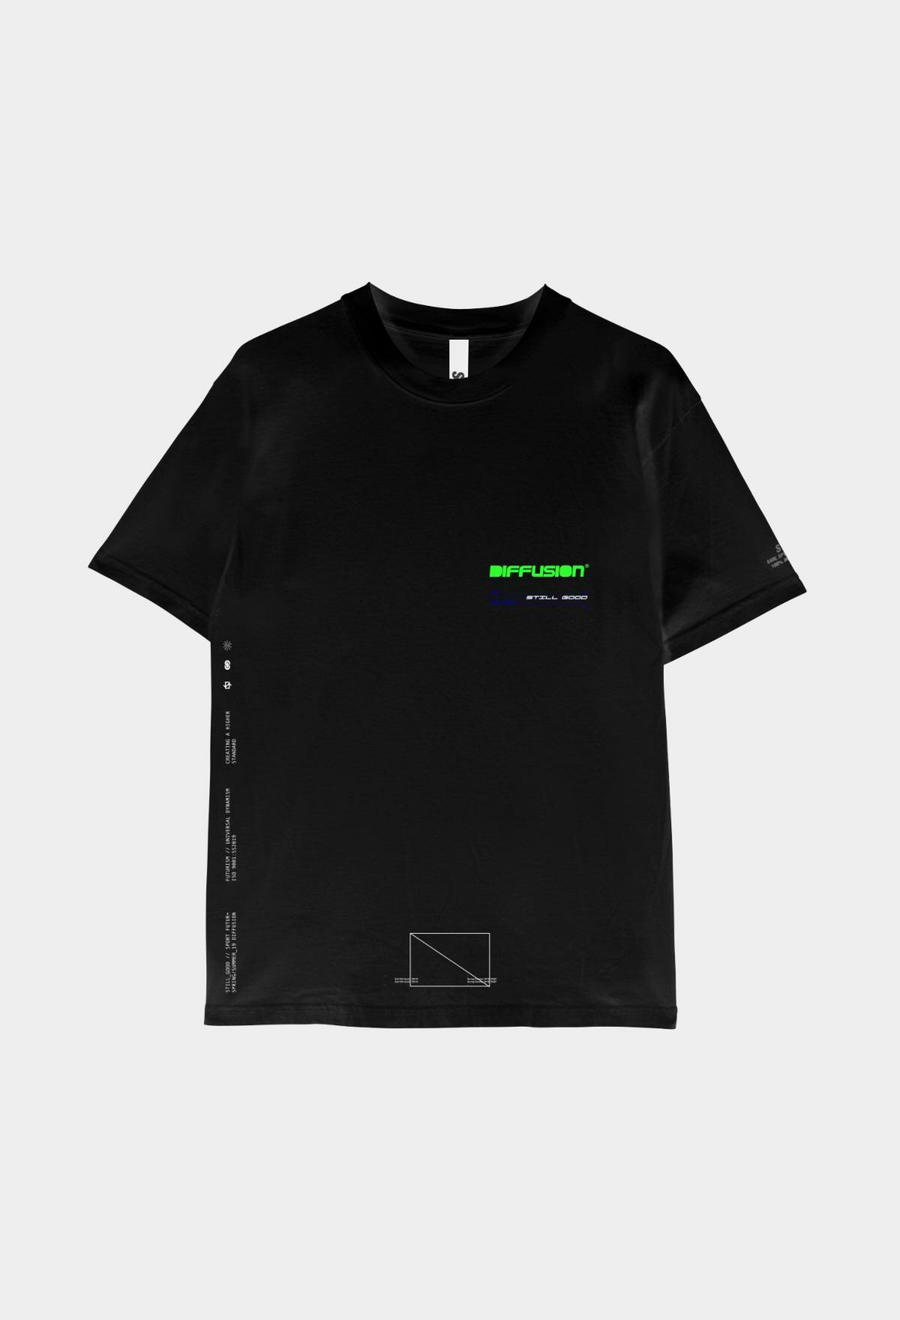 Diffusion Tee Black / XS | Still Good